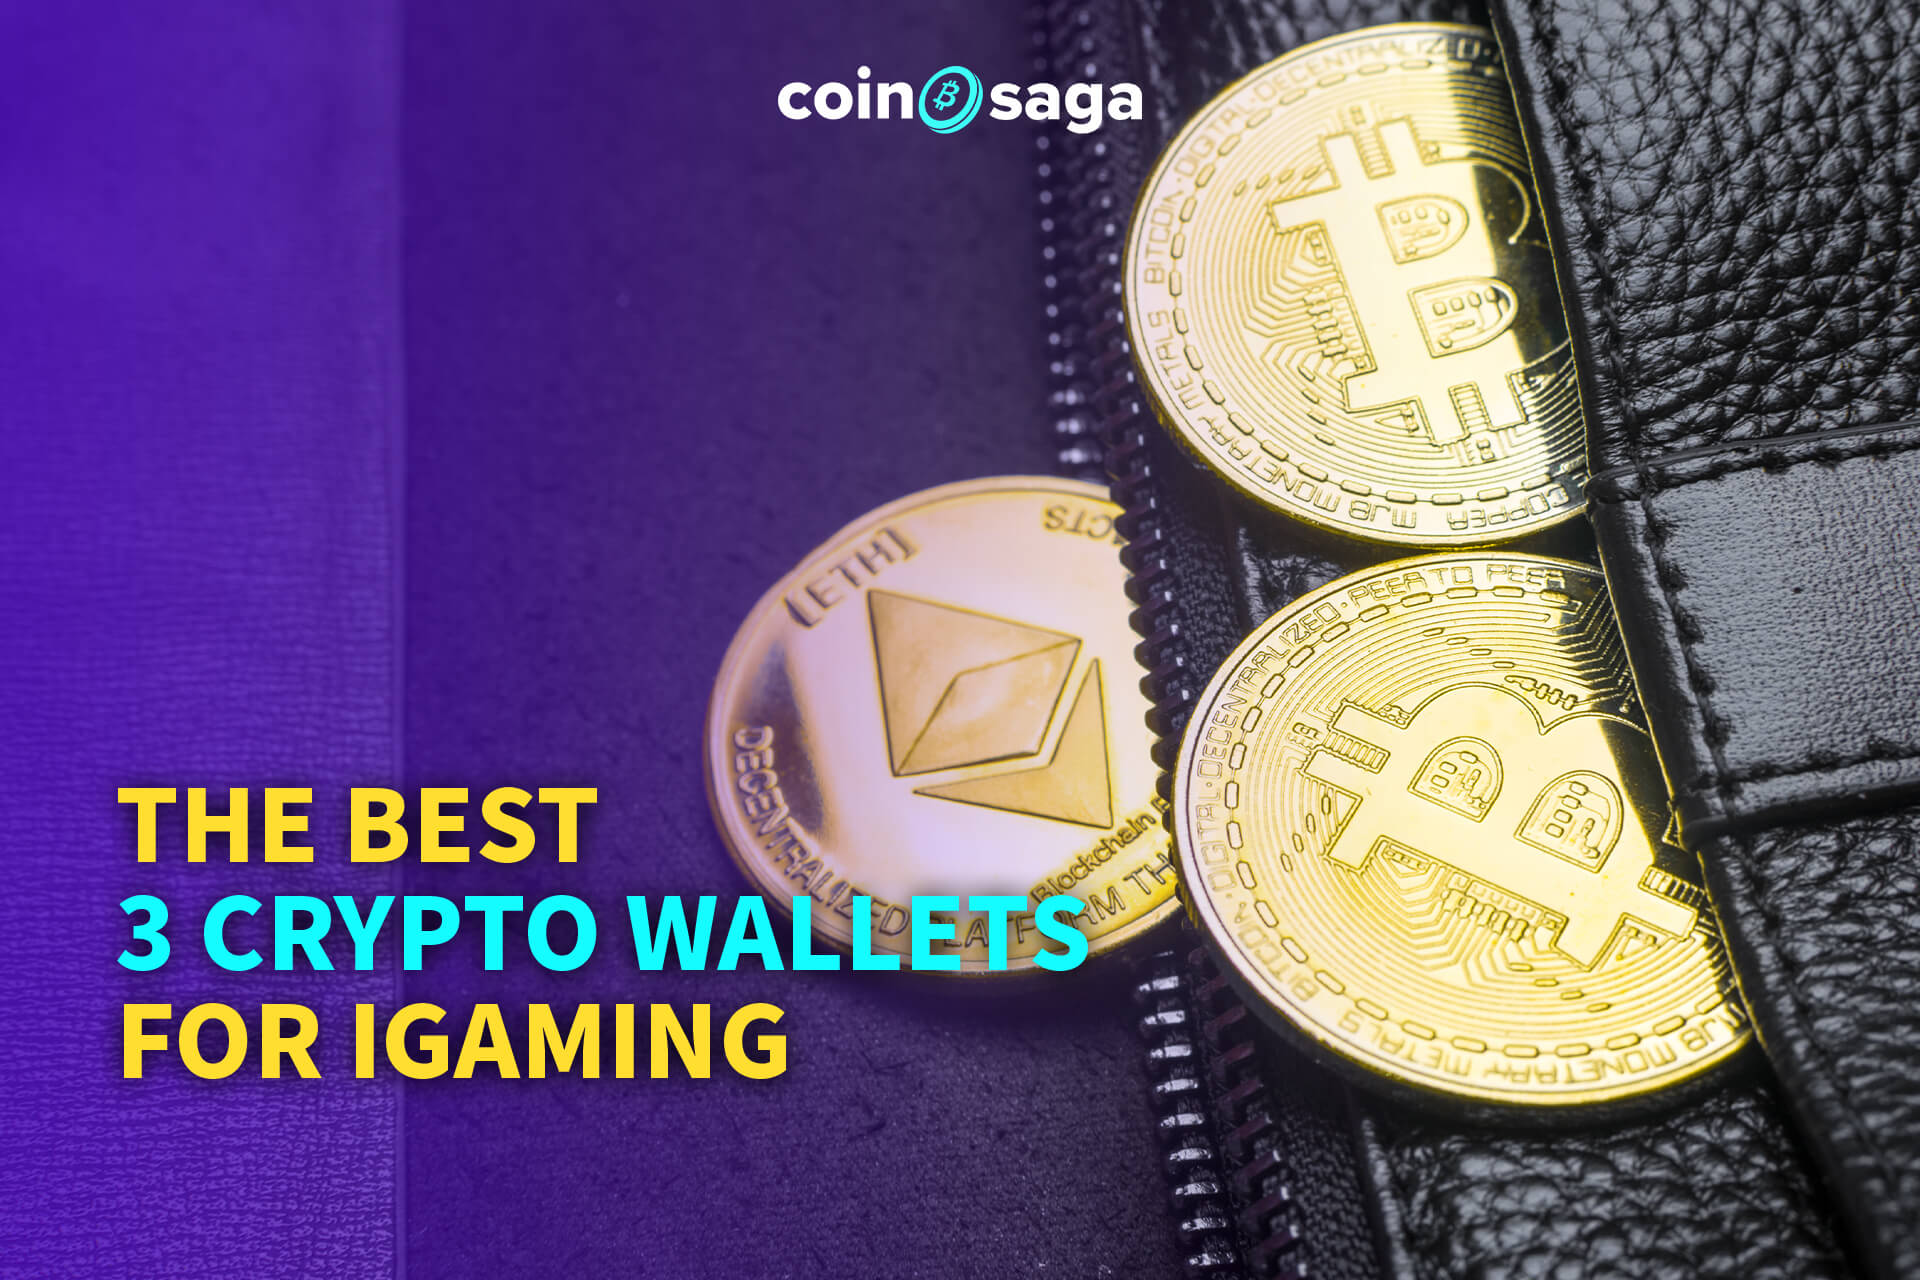 best crypto wallet igaming